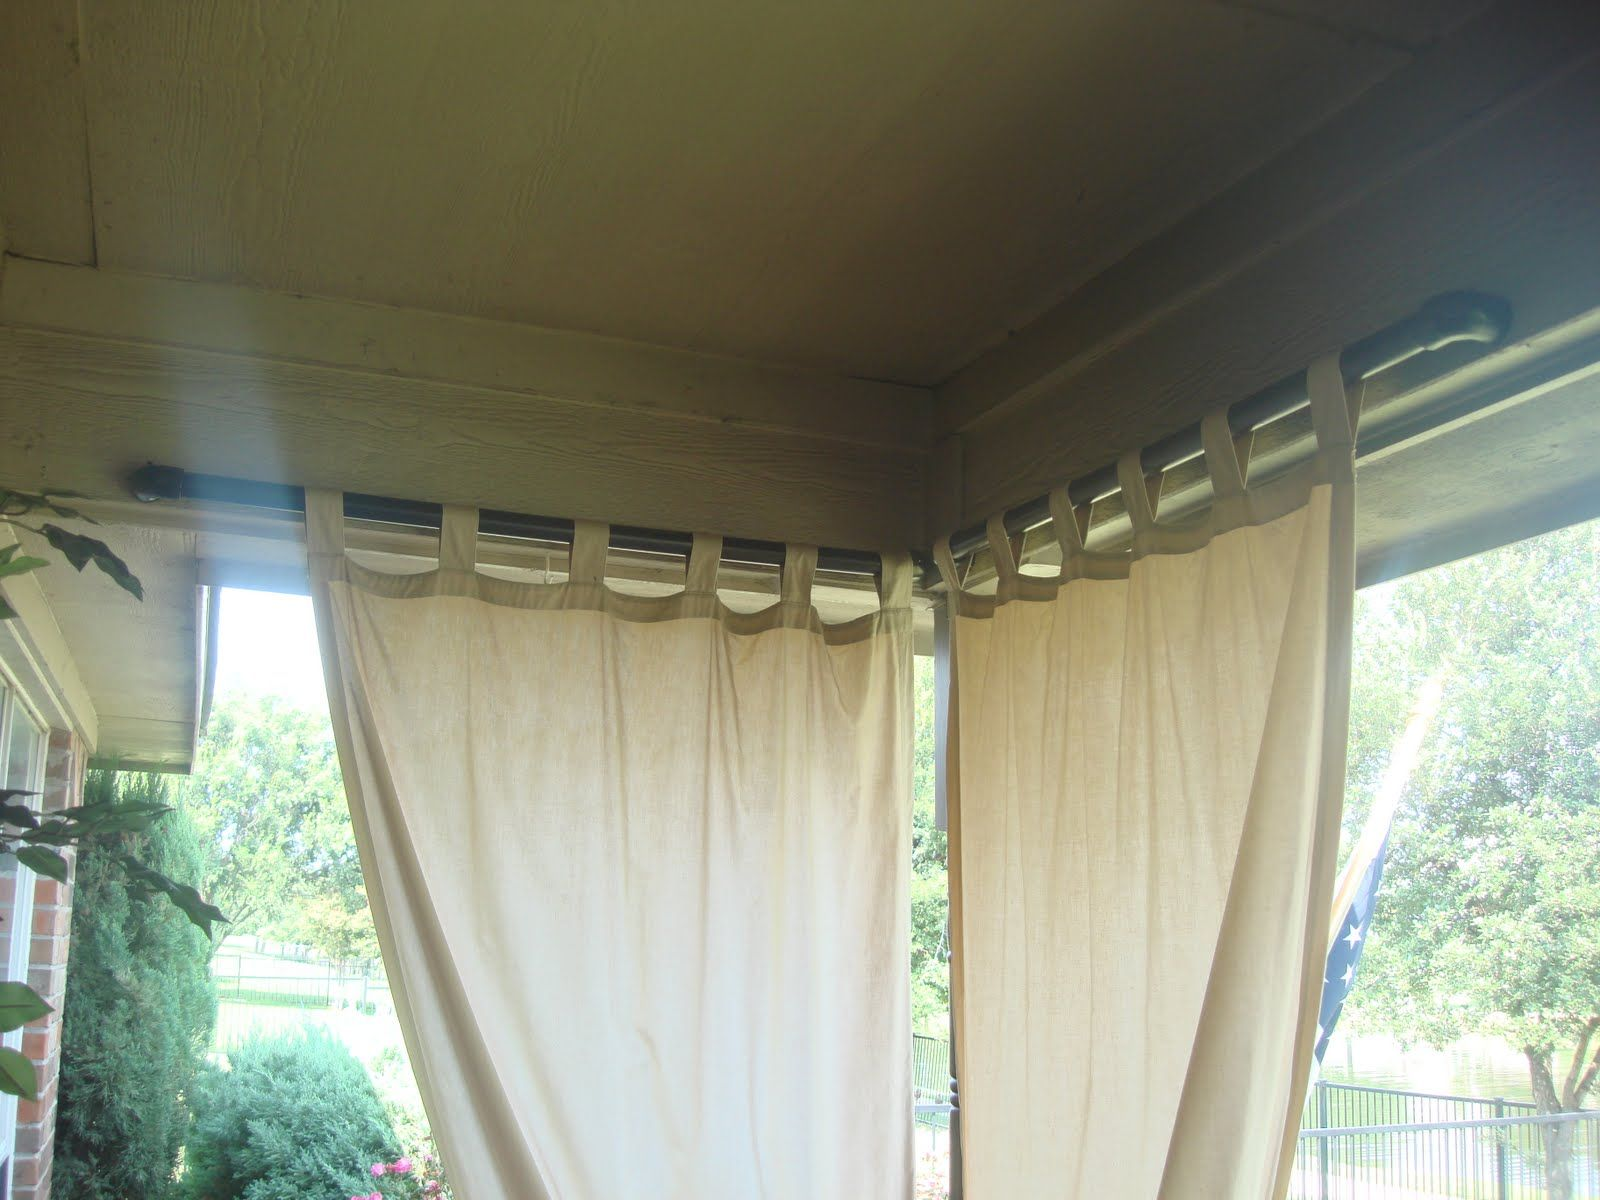 Outdoor Curtains With Pvc Rods Outdoor Curtain Rods Patio Curtains